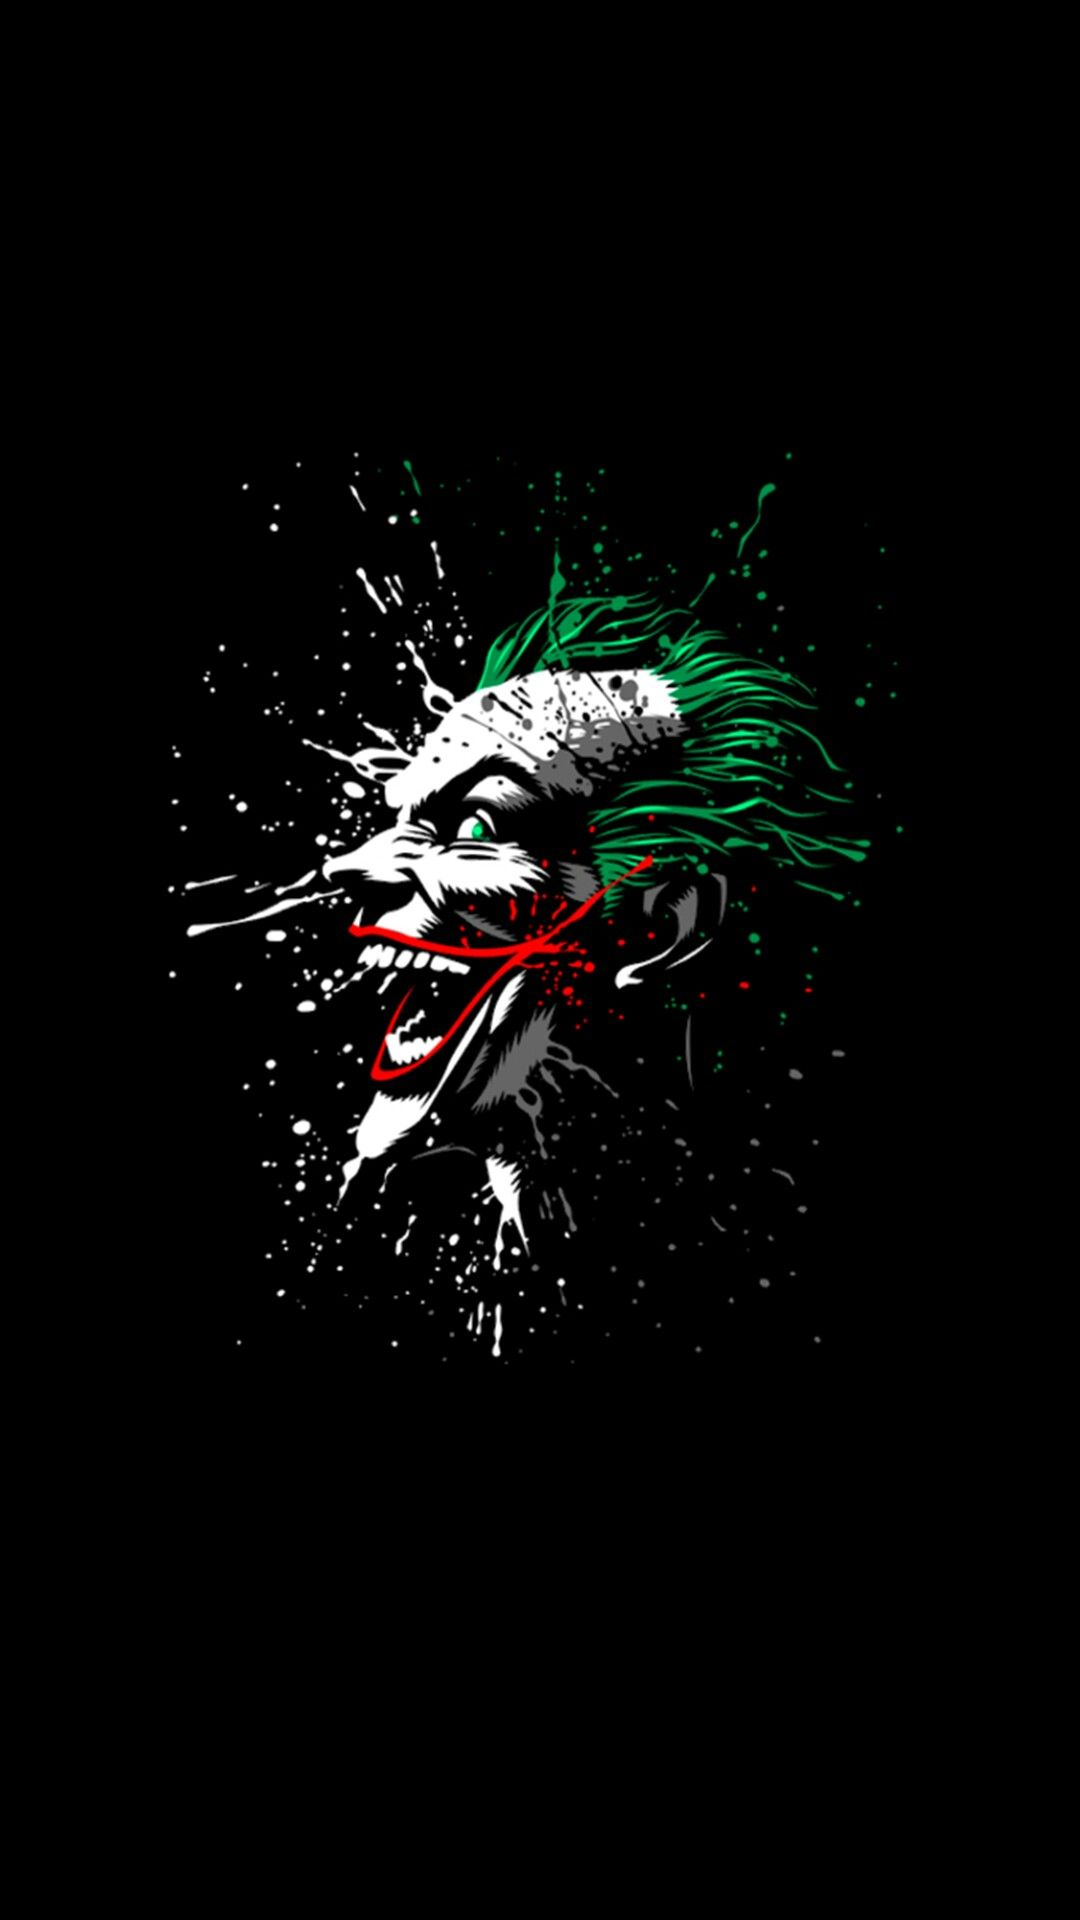 Pin by EC on Batman Joker wallpapers Joker Joker pics 1080x1920